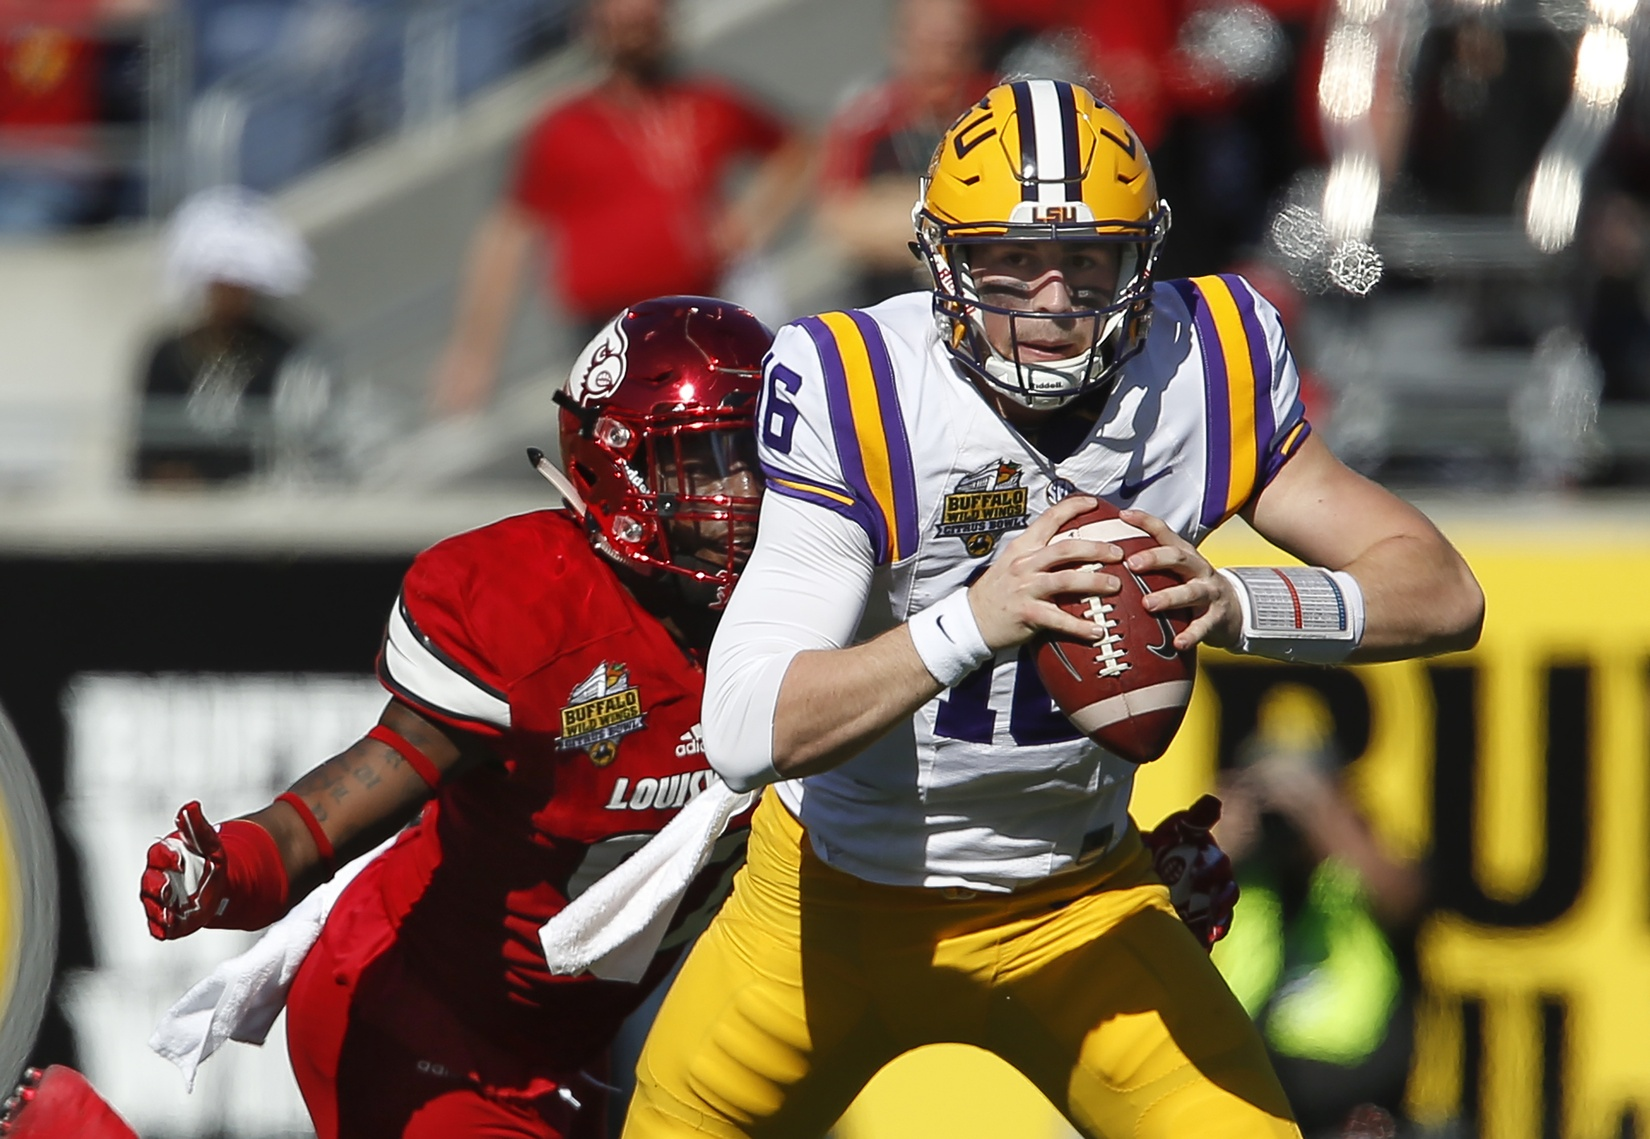 Dec 31, 2016; Orlando, FL, USA; LSU Tigers quarterback Danny Etling (16) is sacked by Louisville Cardinals linebacker Devonte Fields (92) during the first quarter of an NCAA football game in the Buffalo Wild Wings Citrus Bowl at Camping World Stadium. Mandatory Credit: Reinhold Matay-USA TODAY Sports